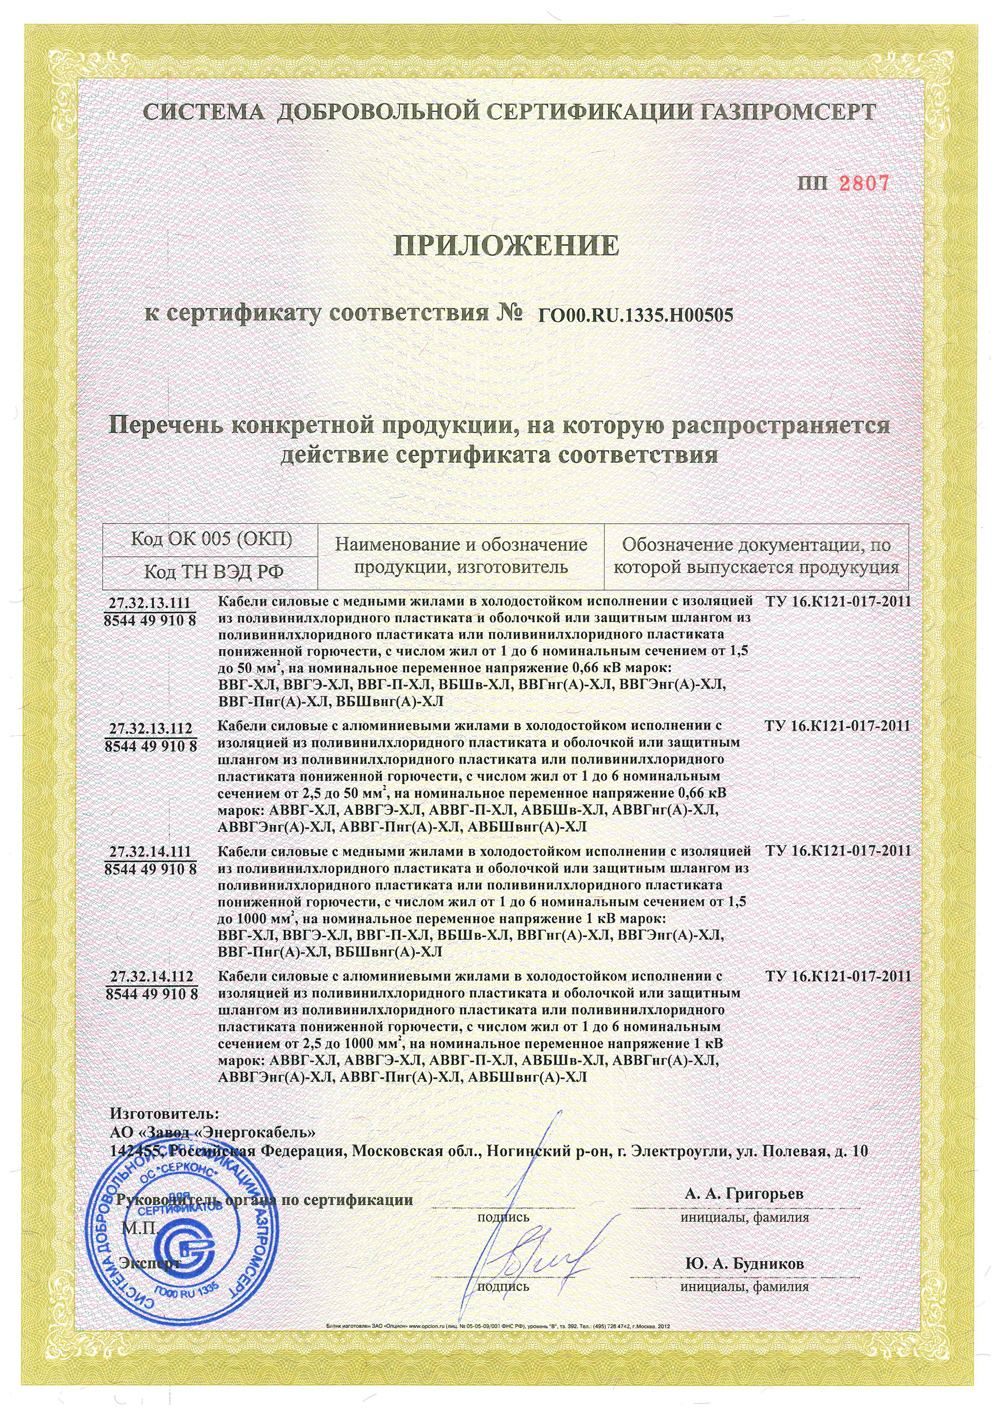 The appendix to the Certificate of Conformity № ГО00.RU.1335.Н00505.